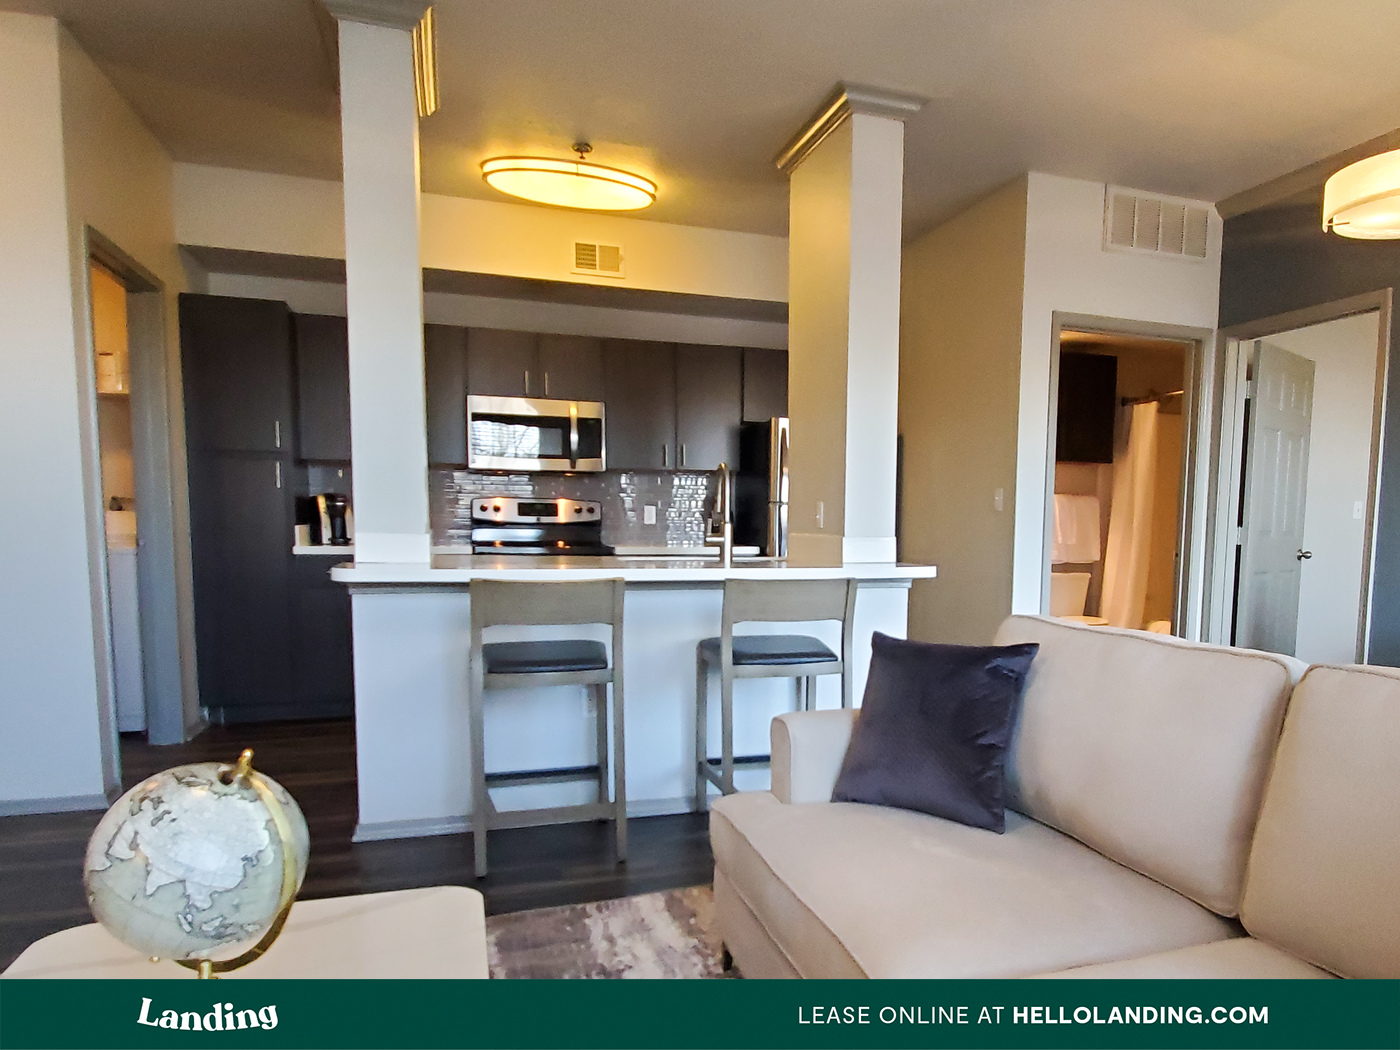 Landing Furnished Apartment Griffis Westminster Center